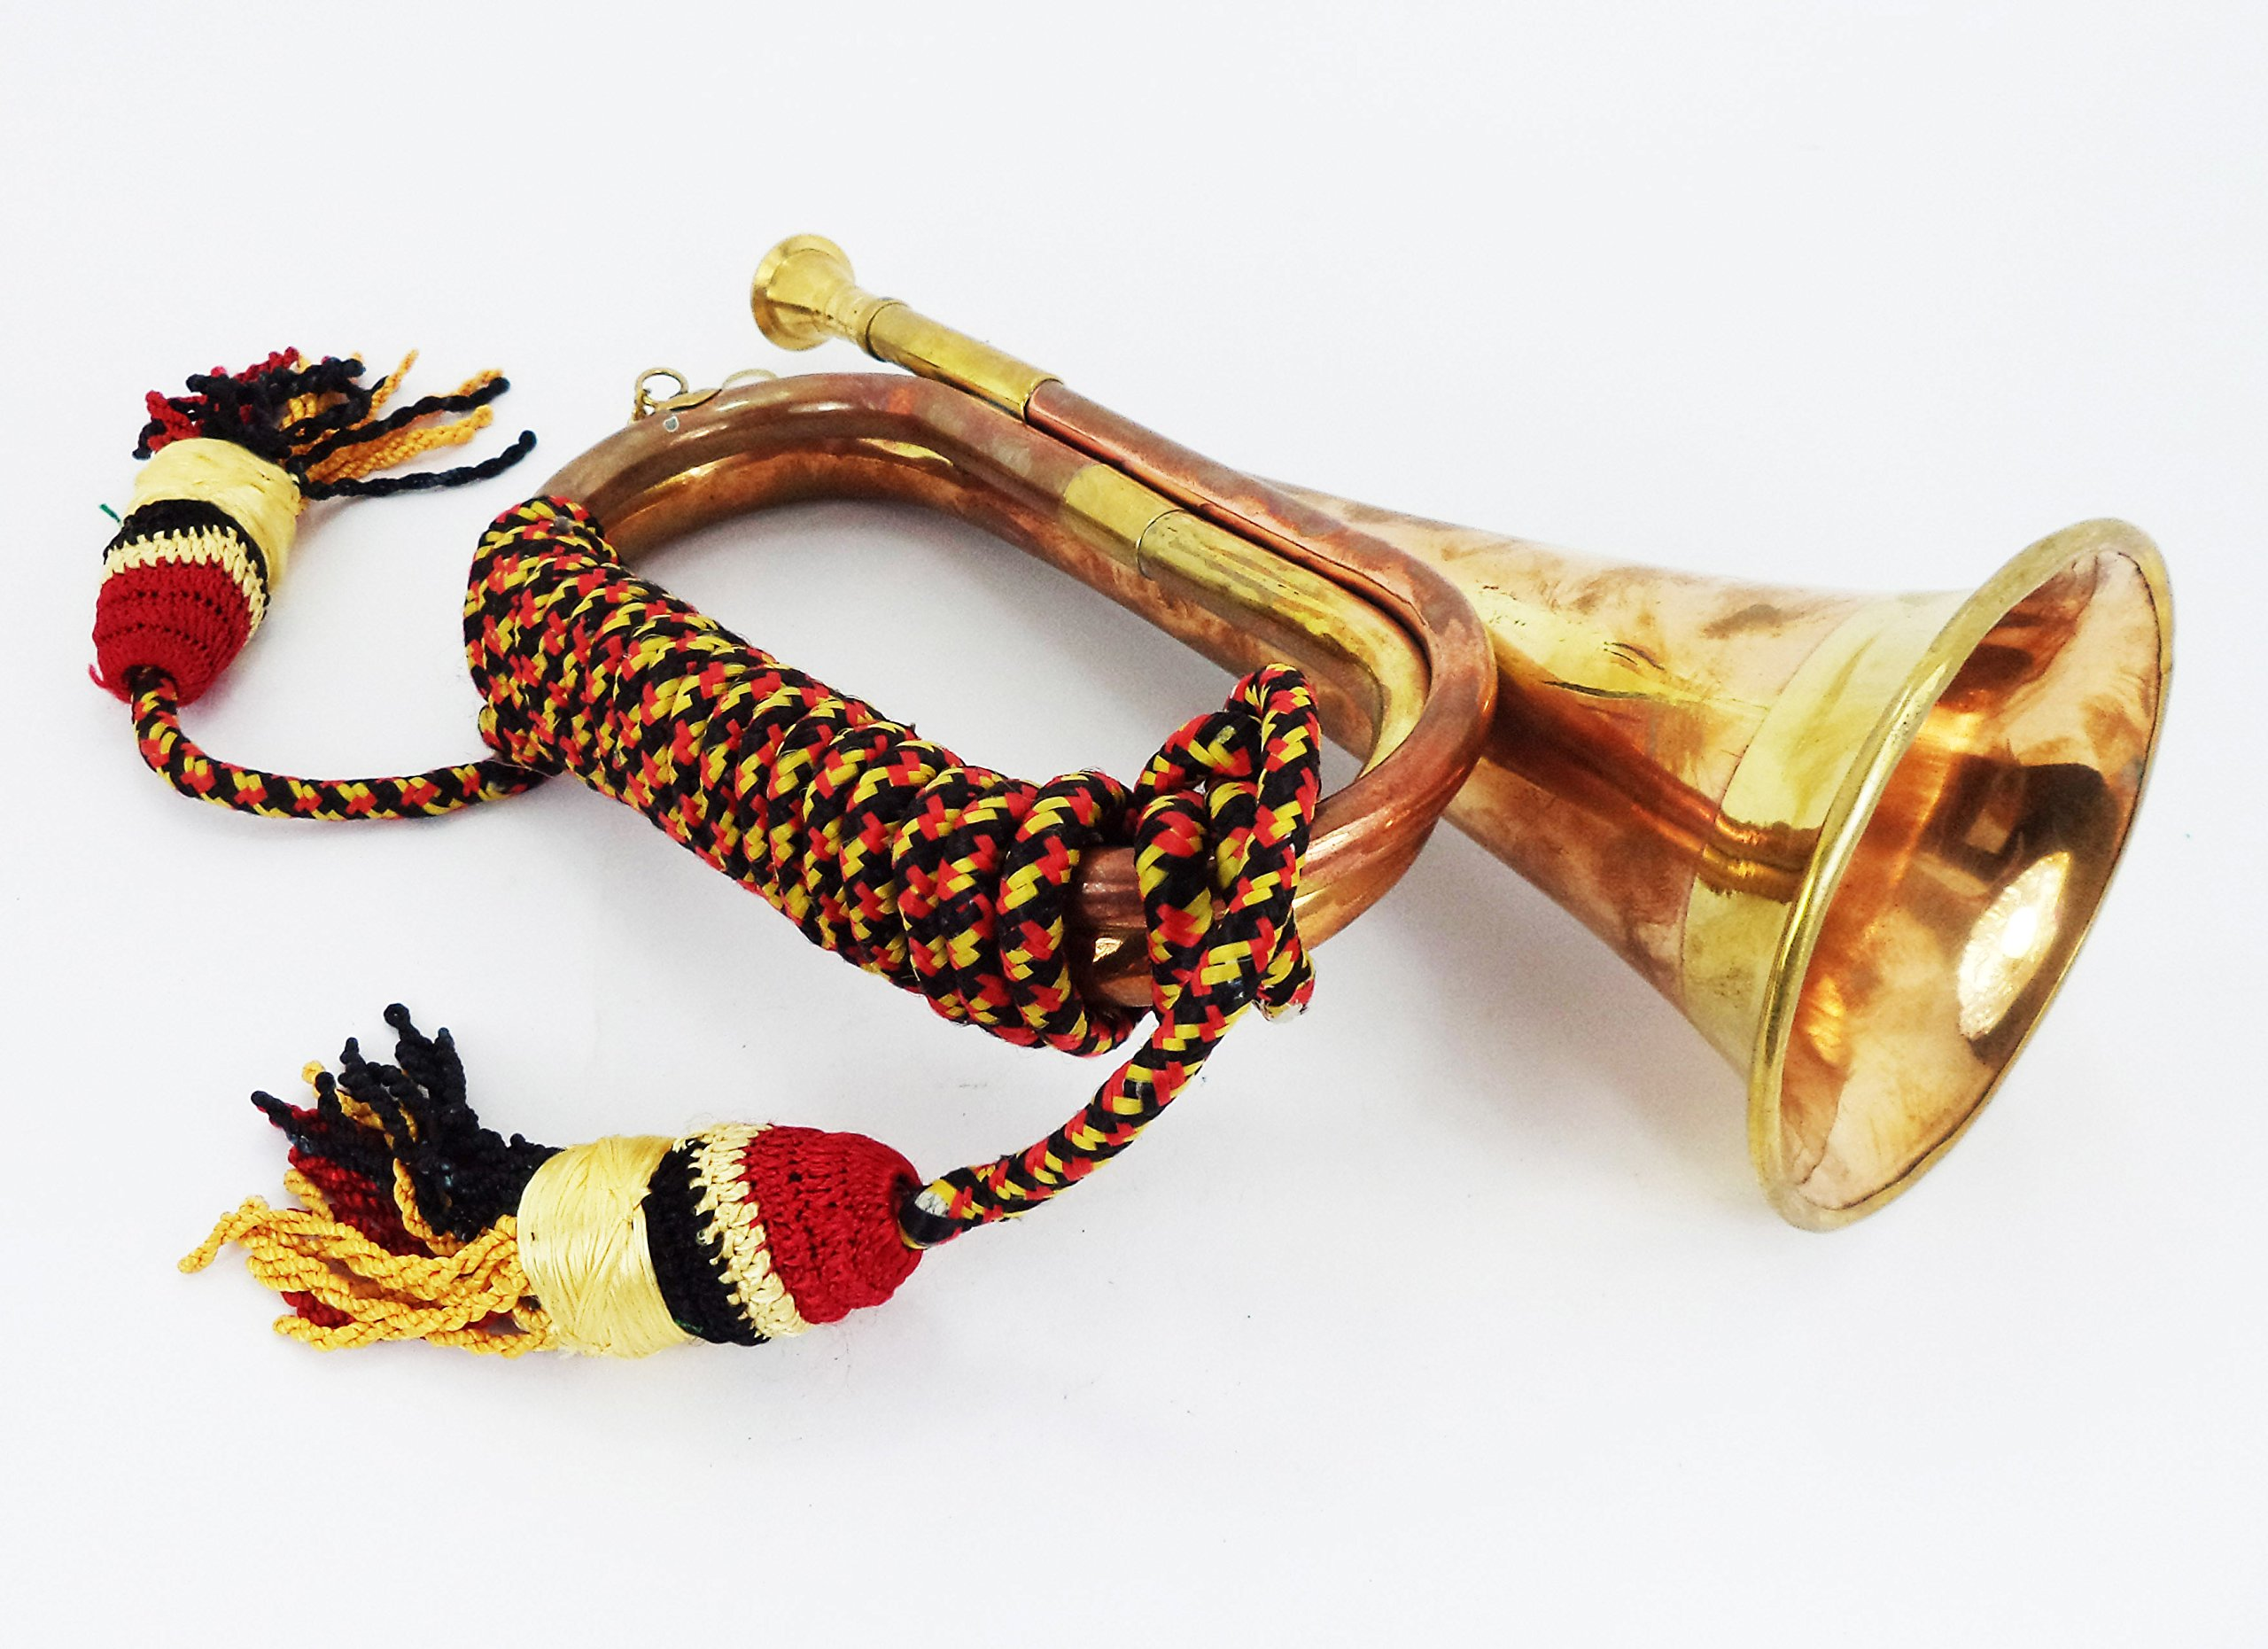 Boy Scout Brass and Copper Blowing Bugle Attack War Command Signal Horn 10.6'' Inch with Beautiful Colourful Rope Binding by Dorpmarket